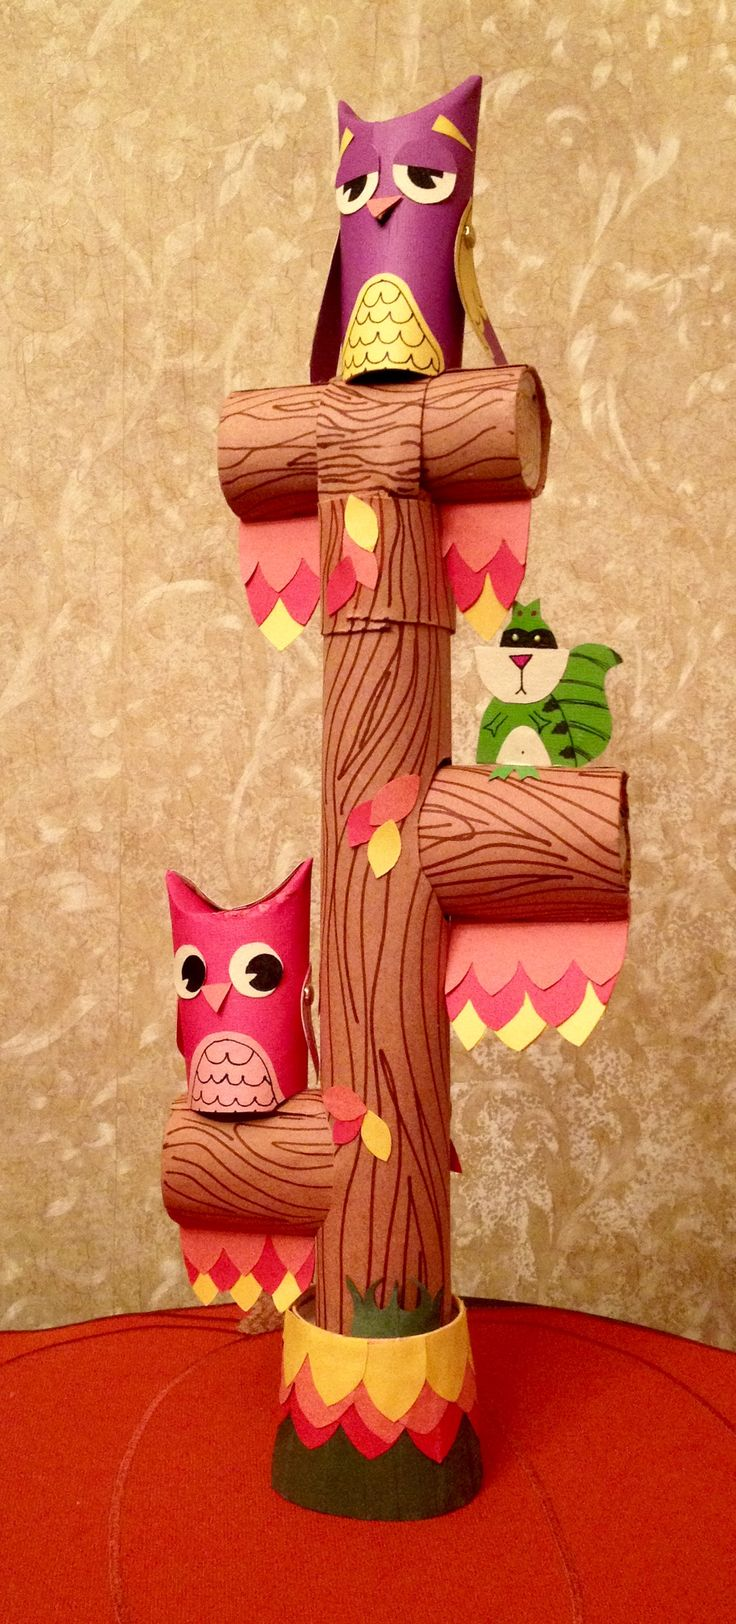 Owl and raccoon tree perch made out of toilet paper tubes, card stock and construction paper.